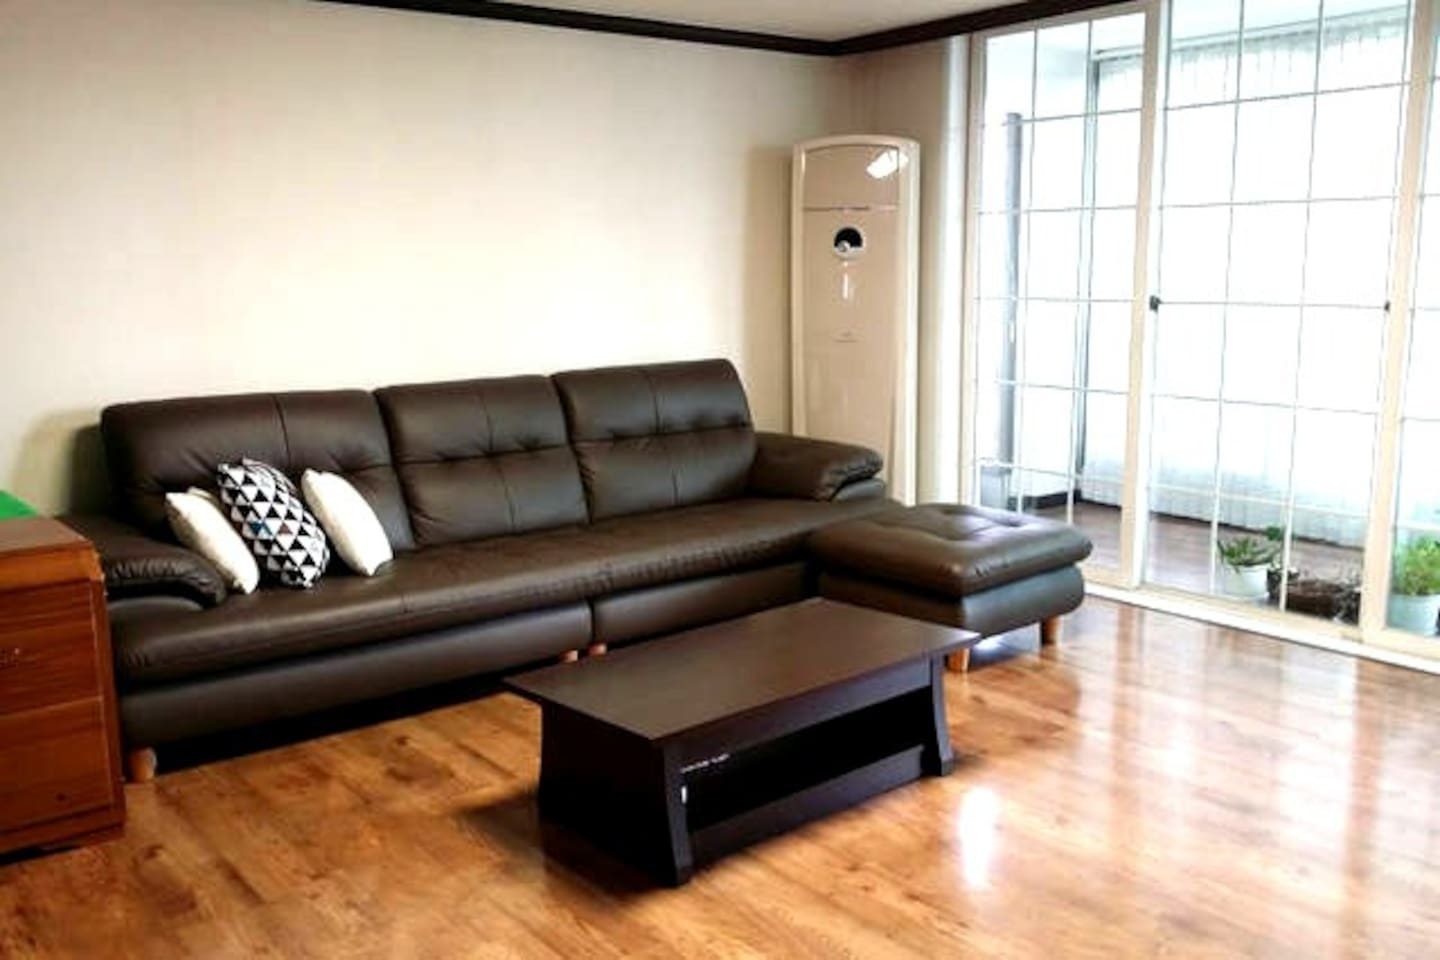 sofa in sitting room